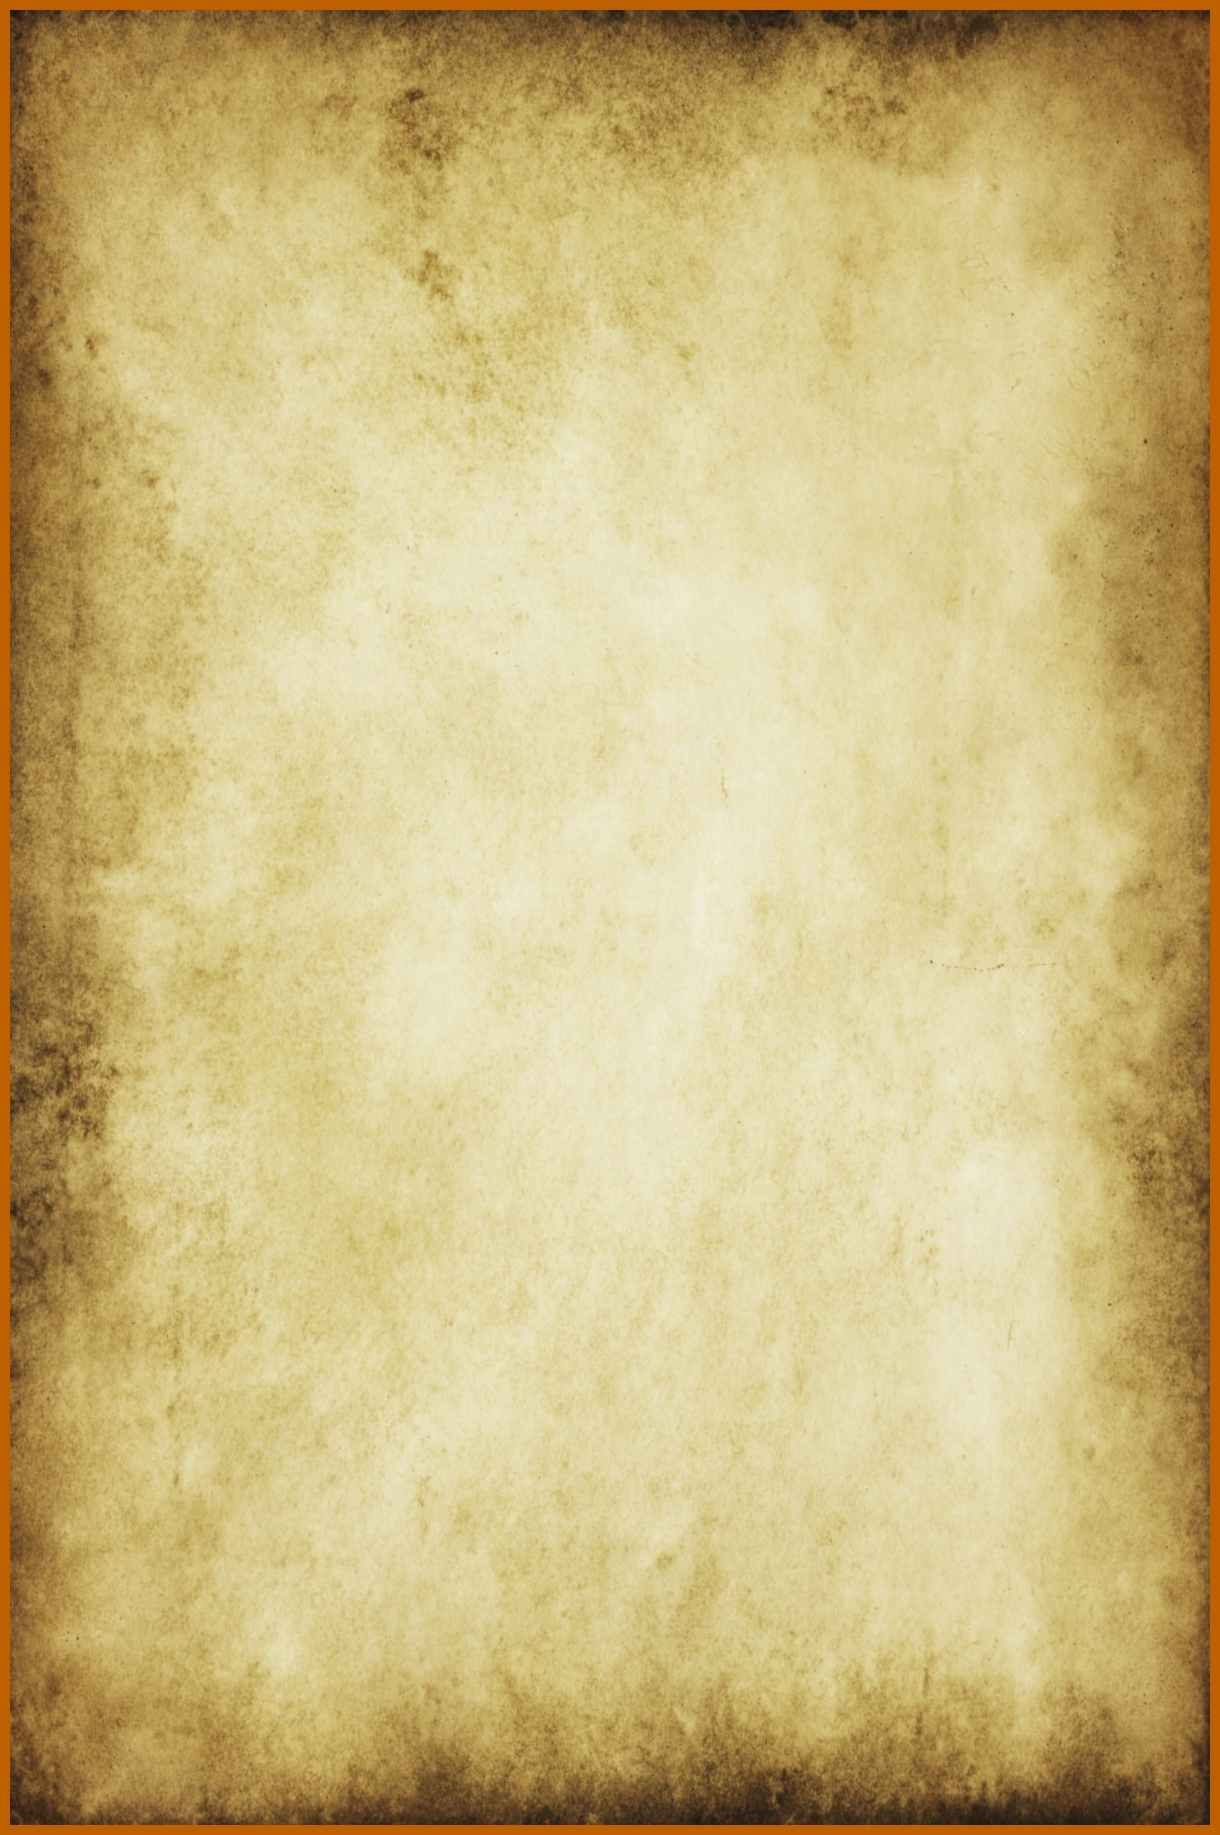 Blank Newspaper Templates Google Search Old Paper Background